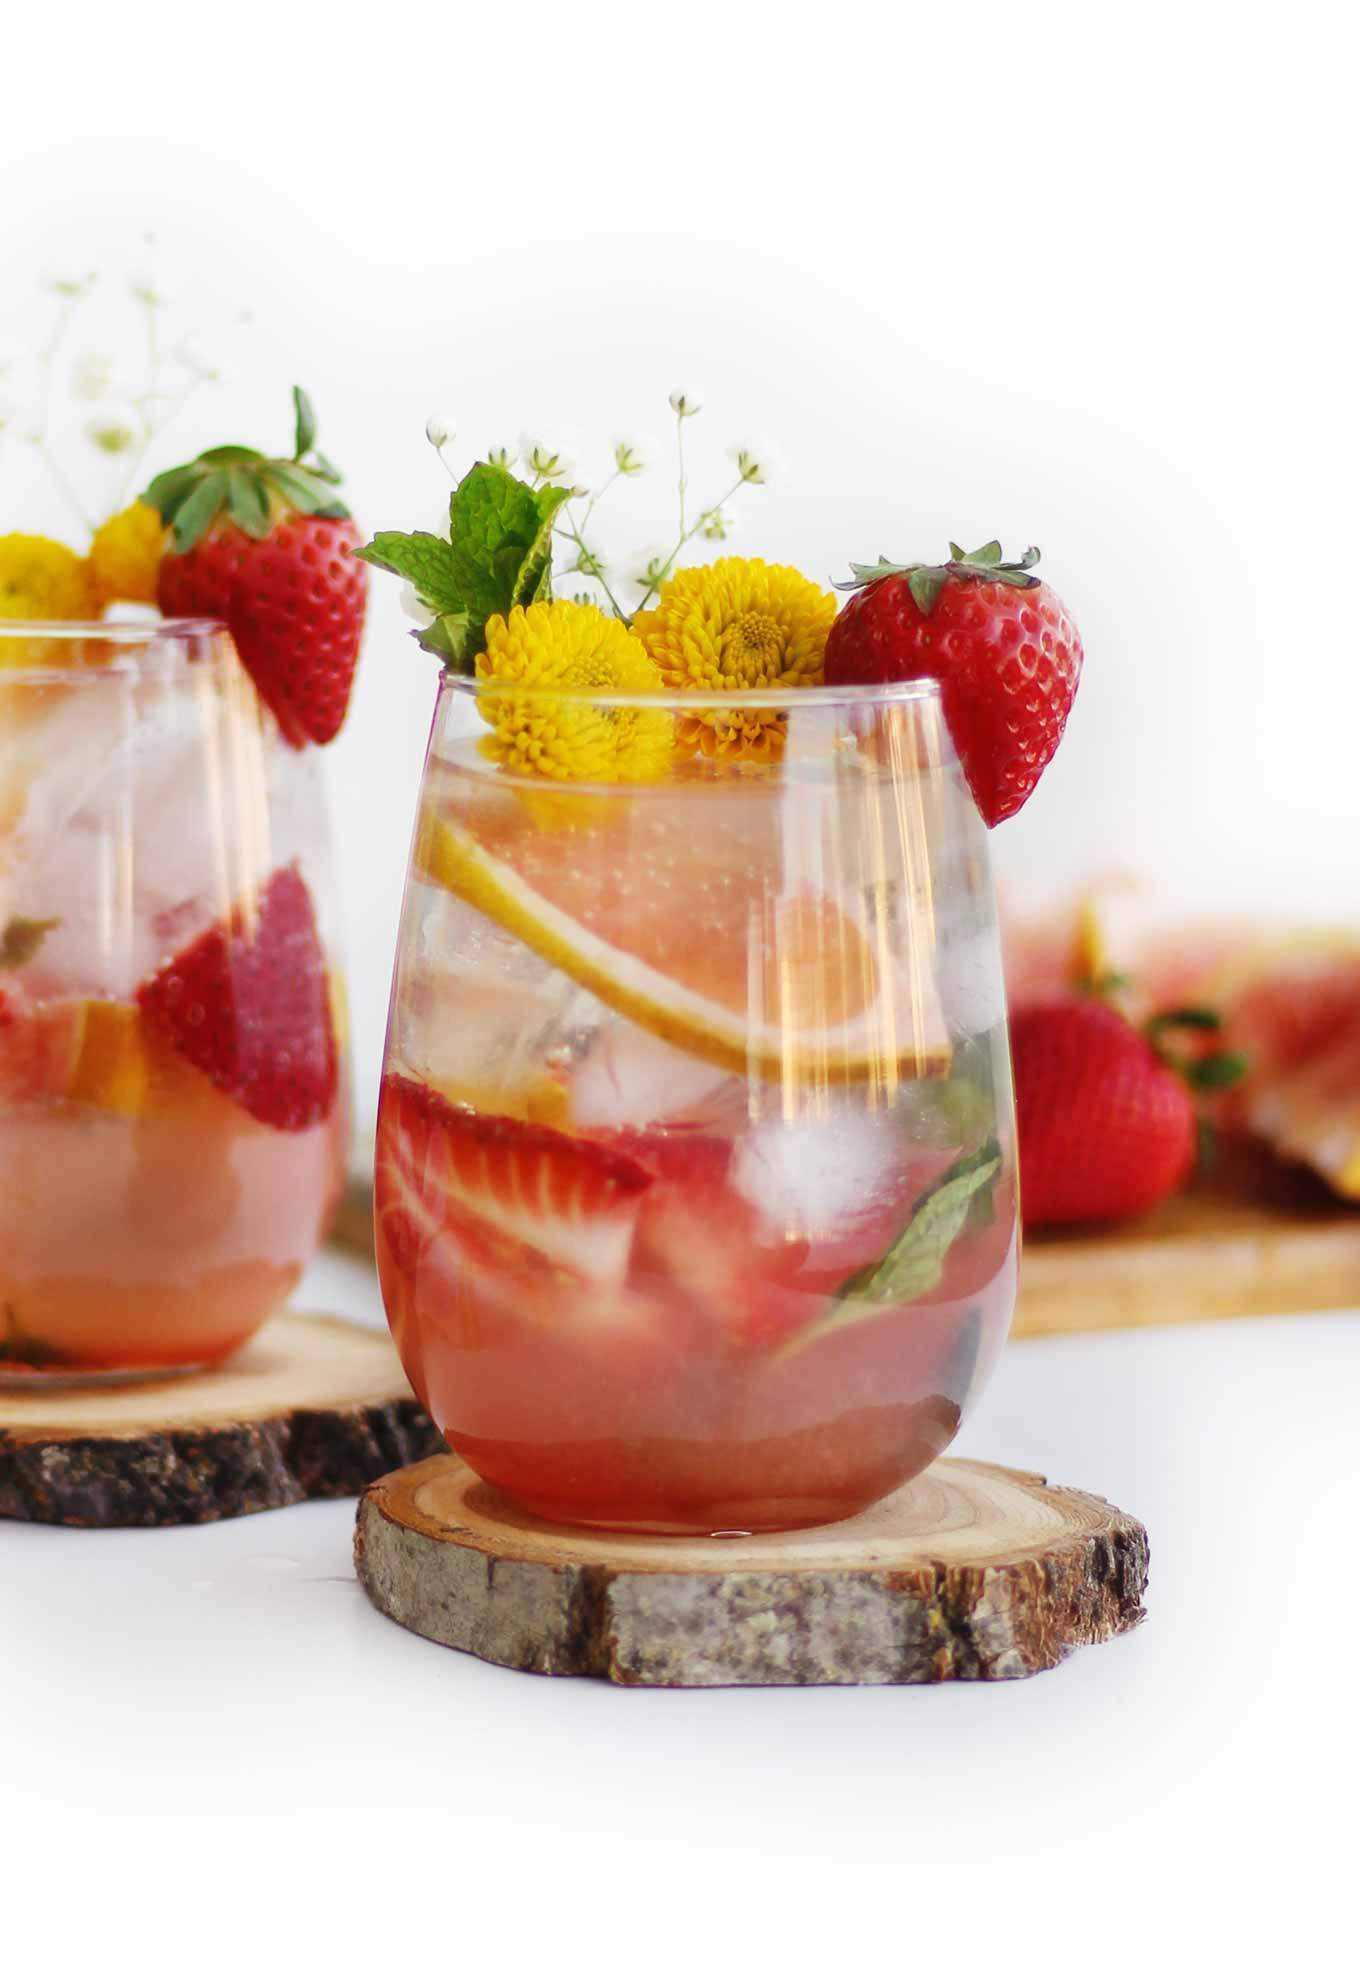 GRAPEFRUIT STRAWBERRY MOJITO served in glasses